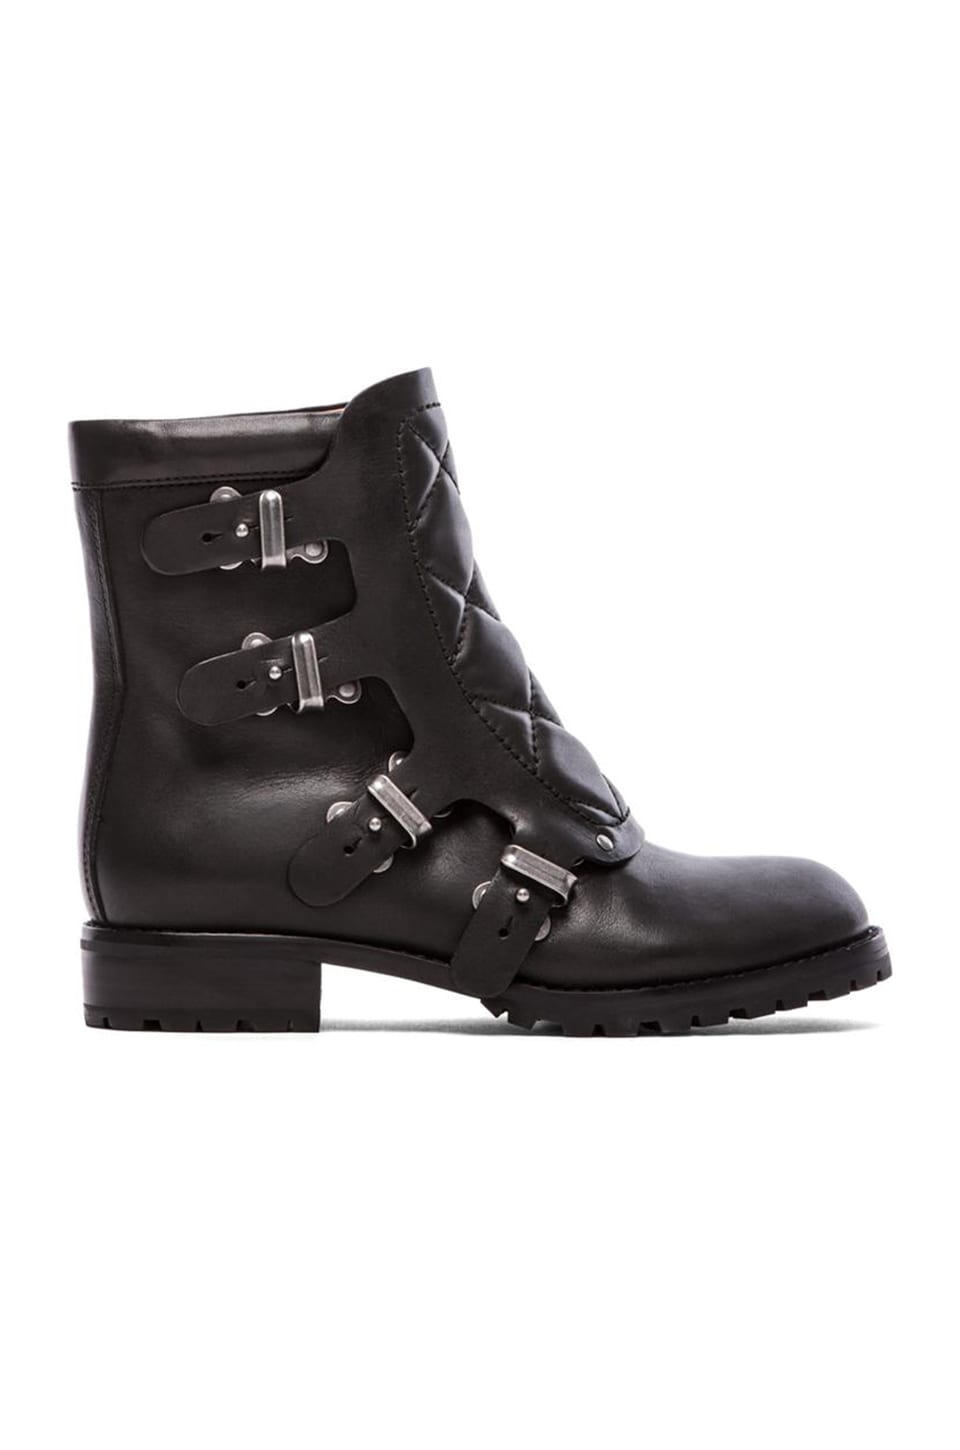 Marc by Marc Jacobs Easy Rider 20mm Flat Ankle Boot in Black